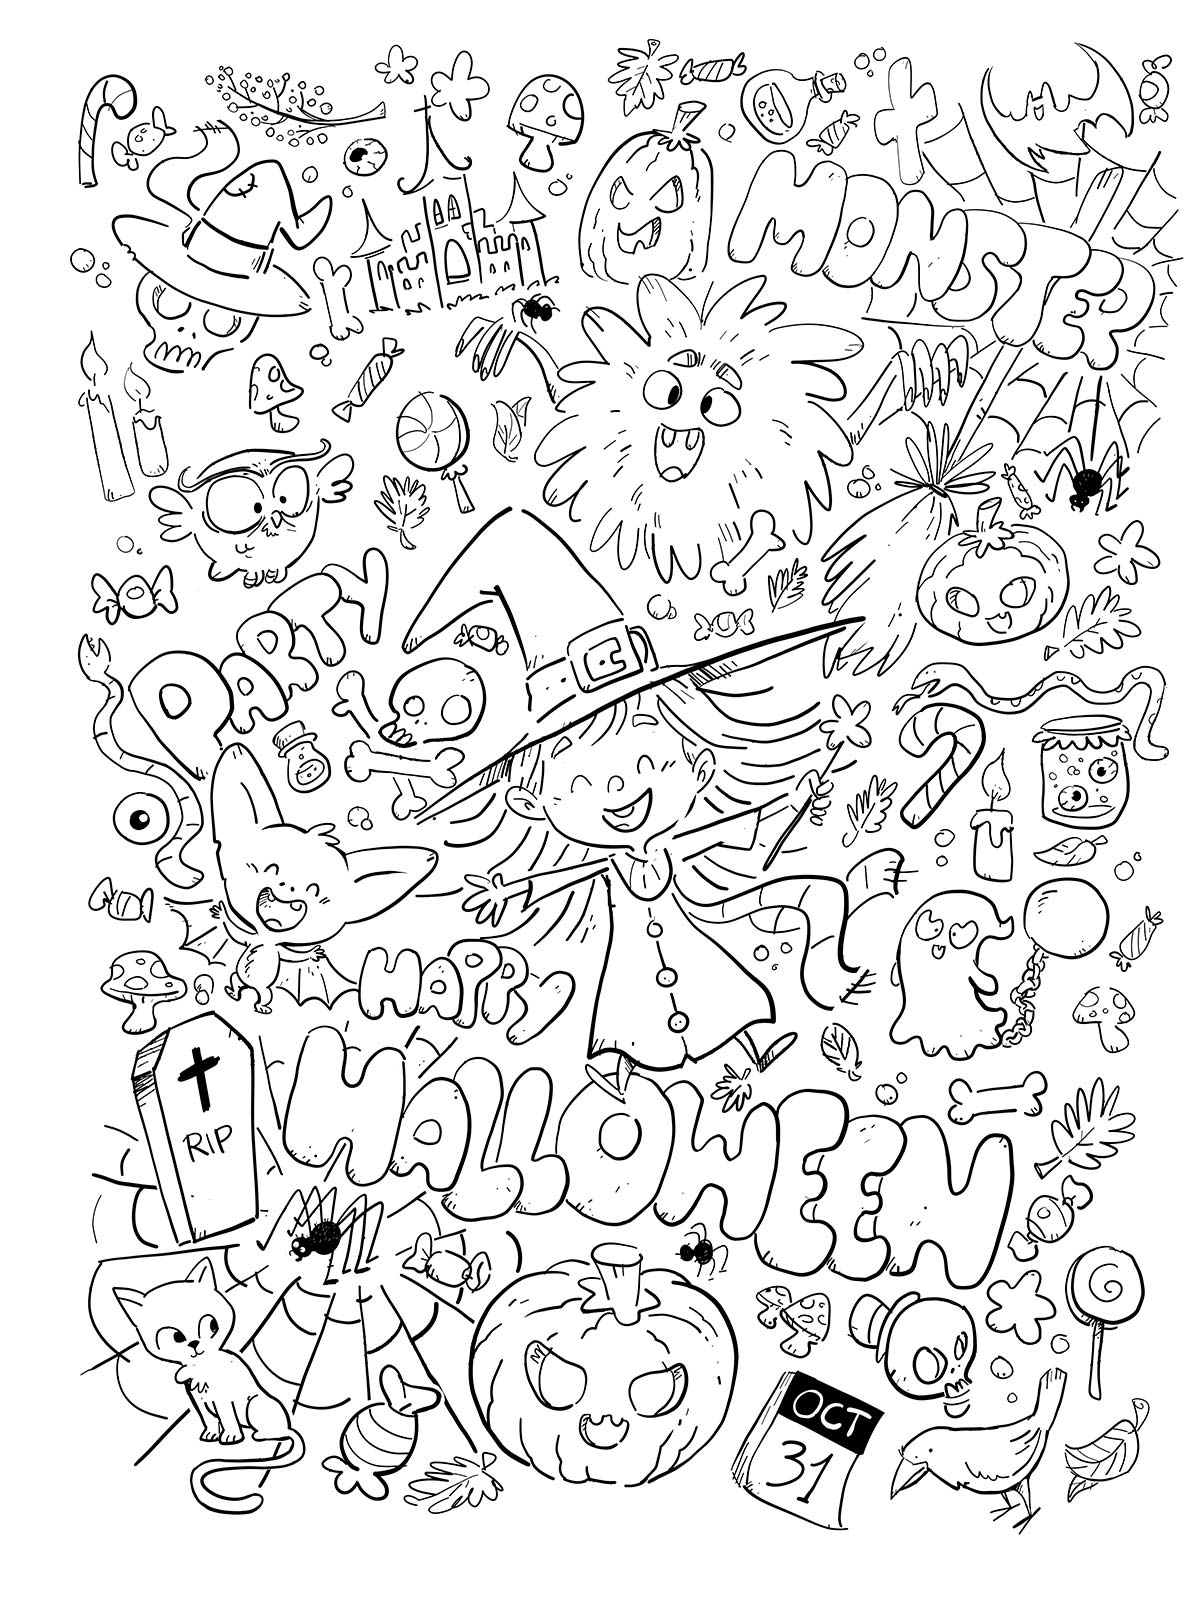 black and white halloween concepts pattern